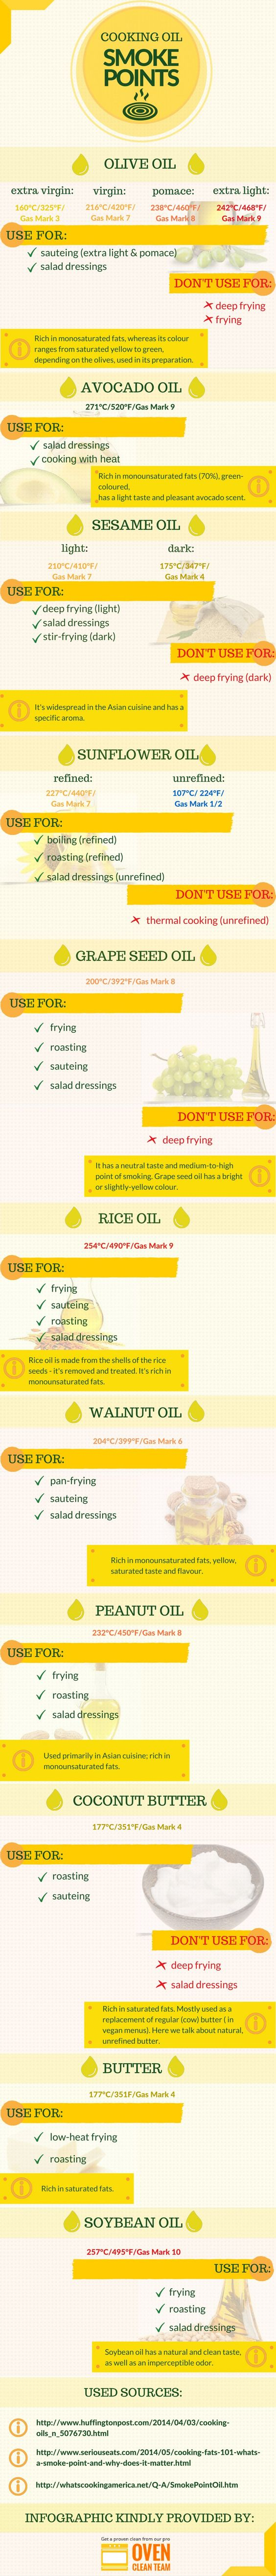 Here's a handy infographic that describes the most commonly used cooking oils' smoke points. If you want to cook healthy and right - here's what you need :):